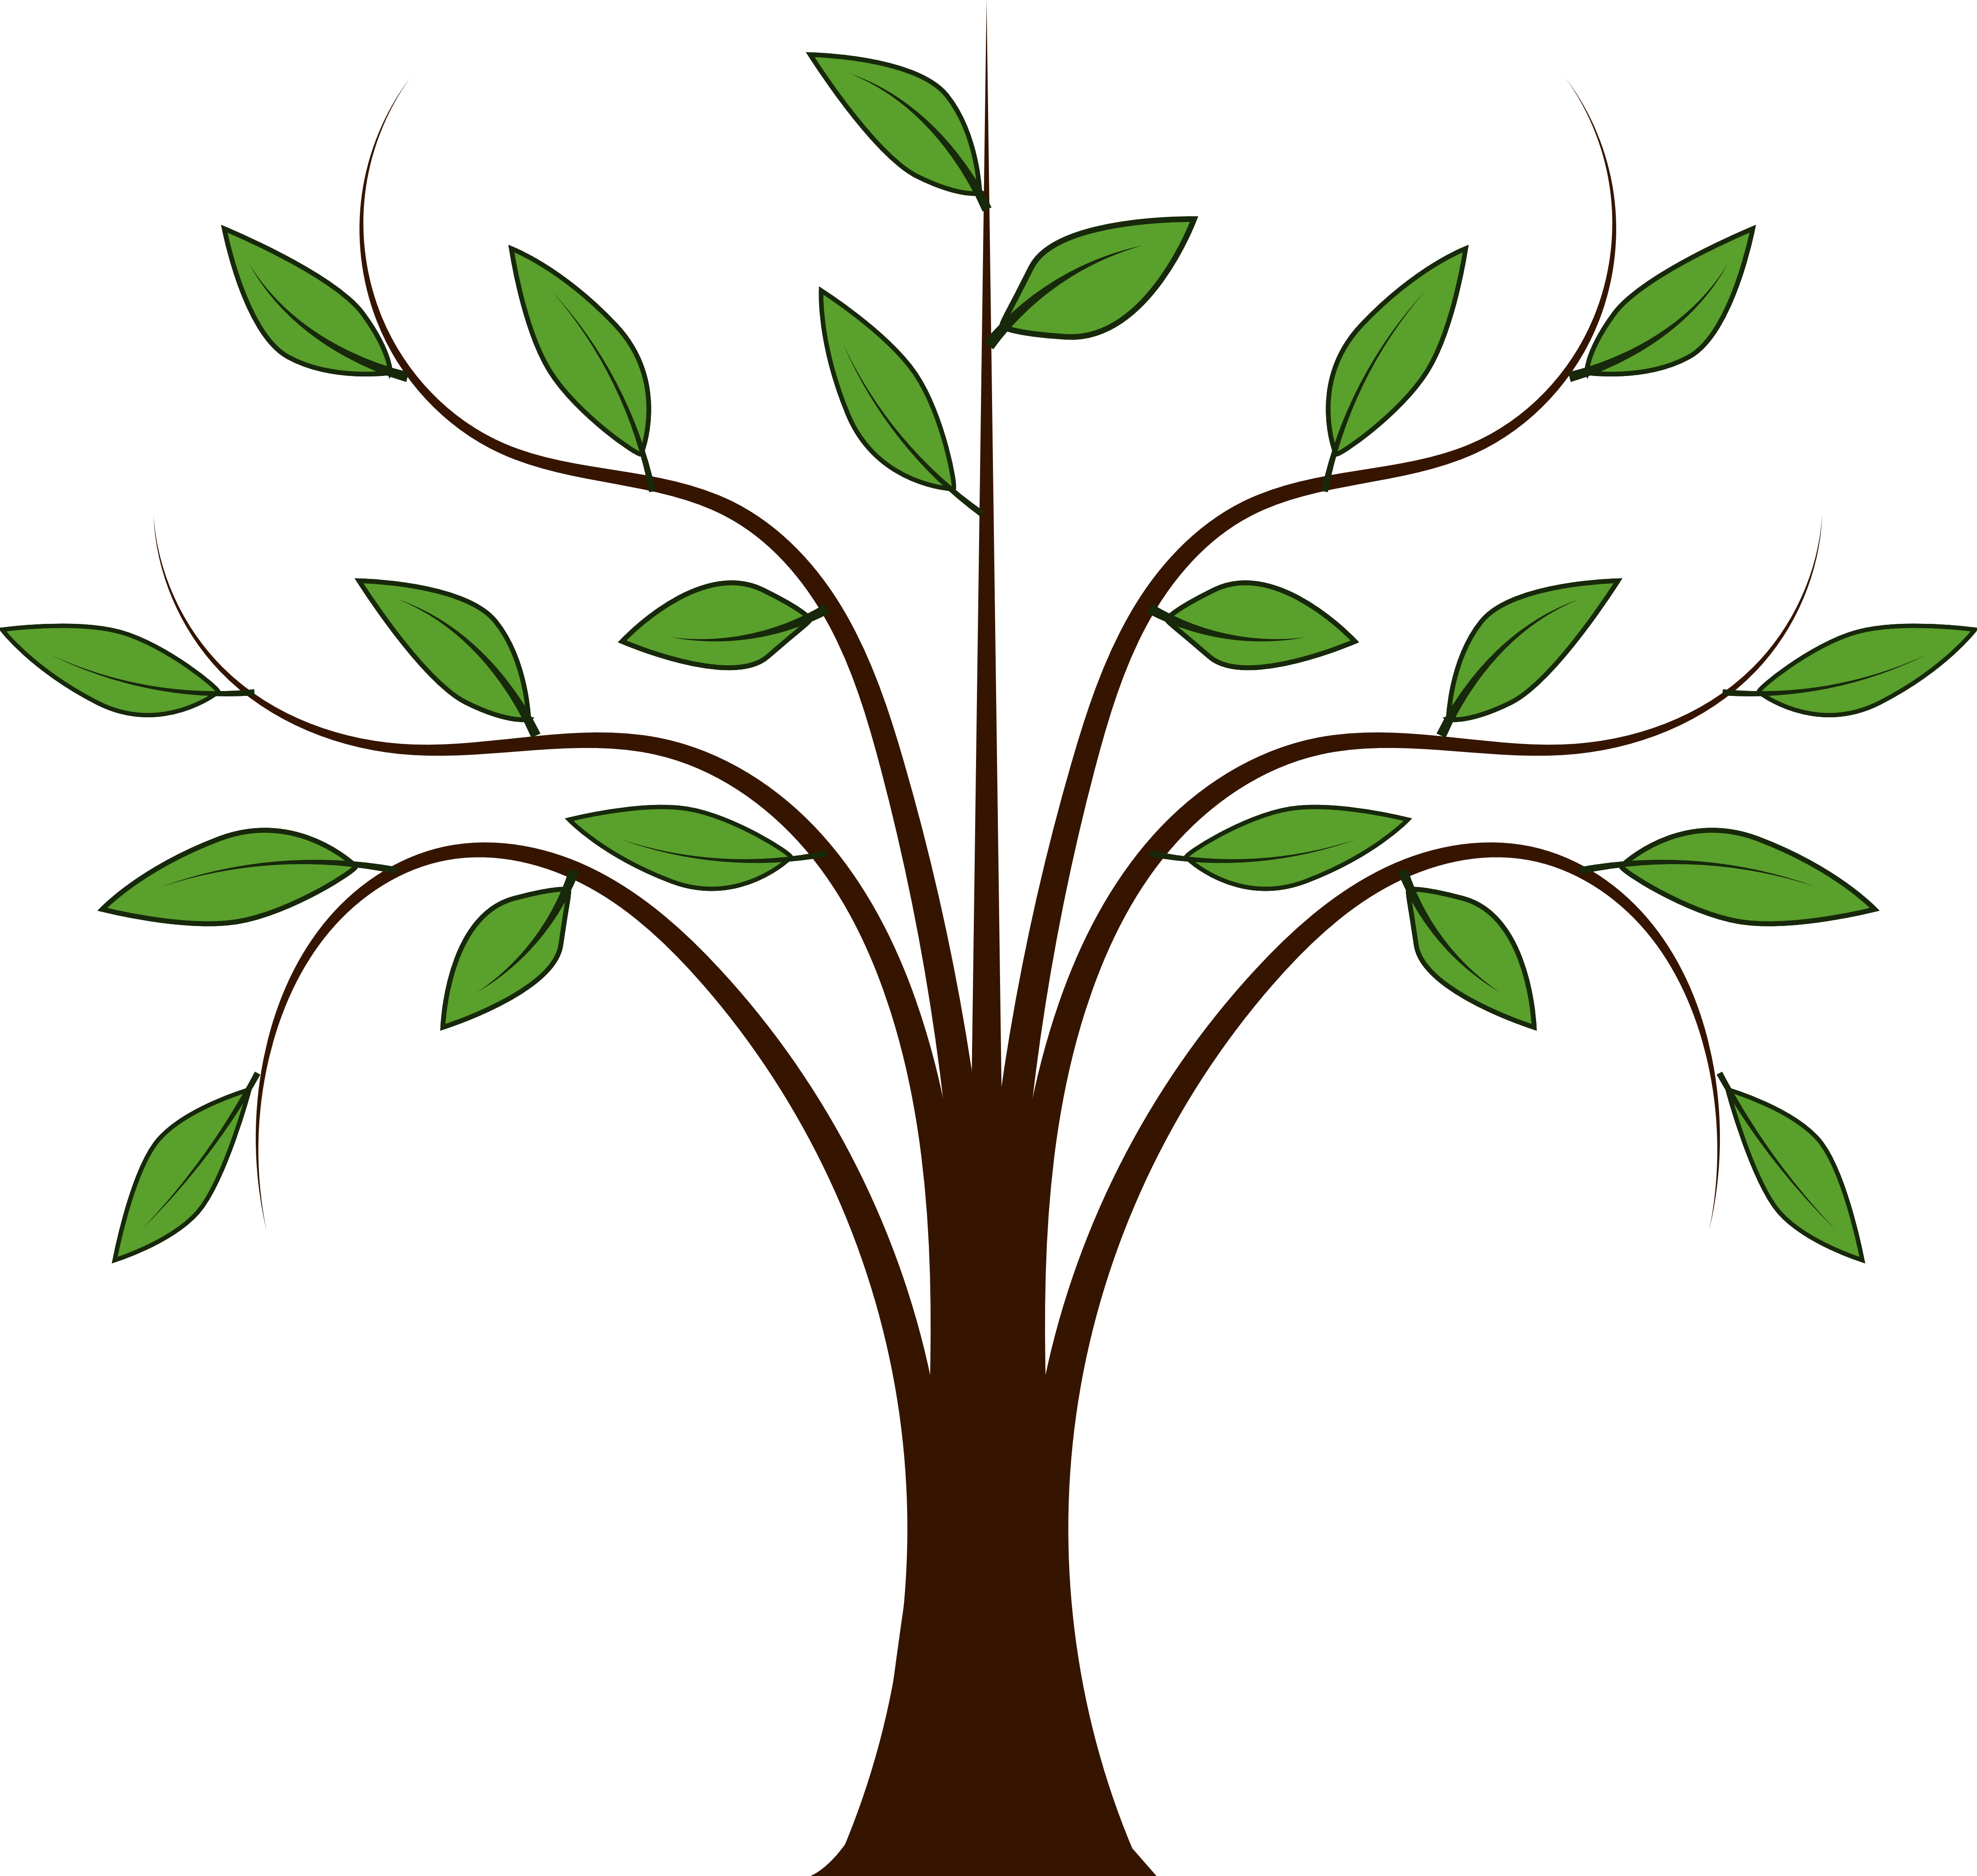 Free image. Tree clipart simple